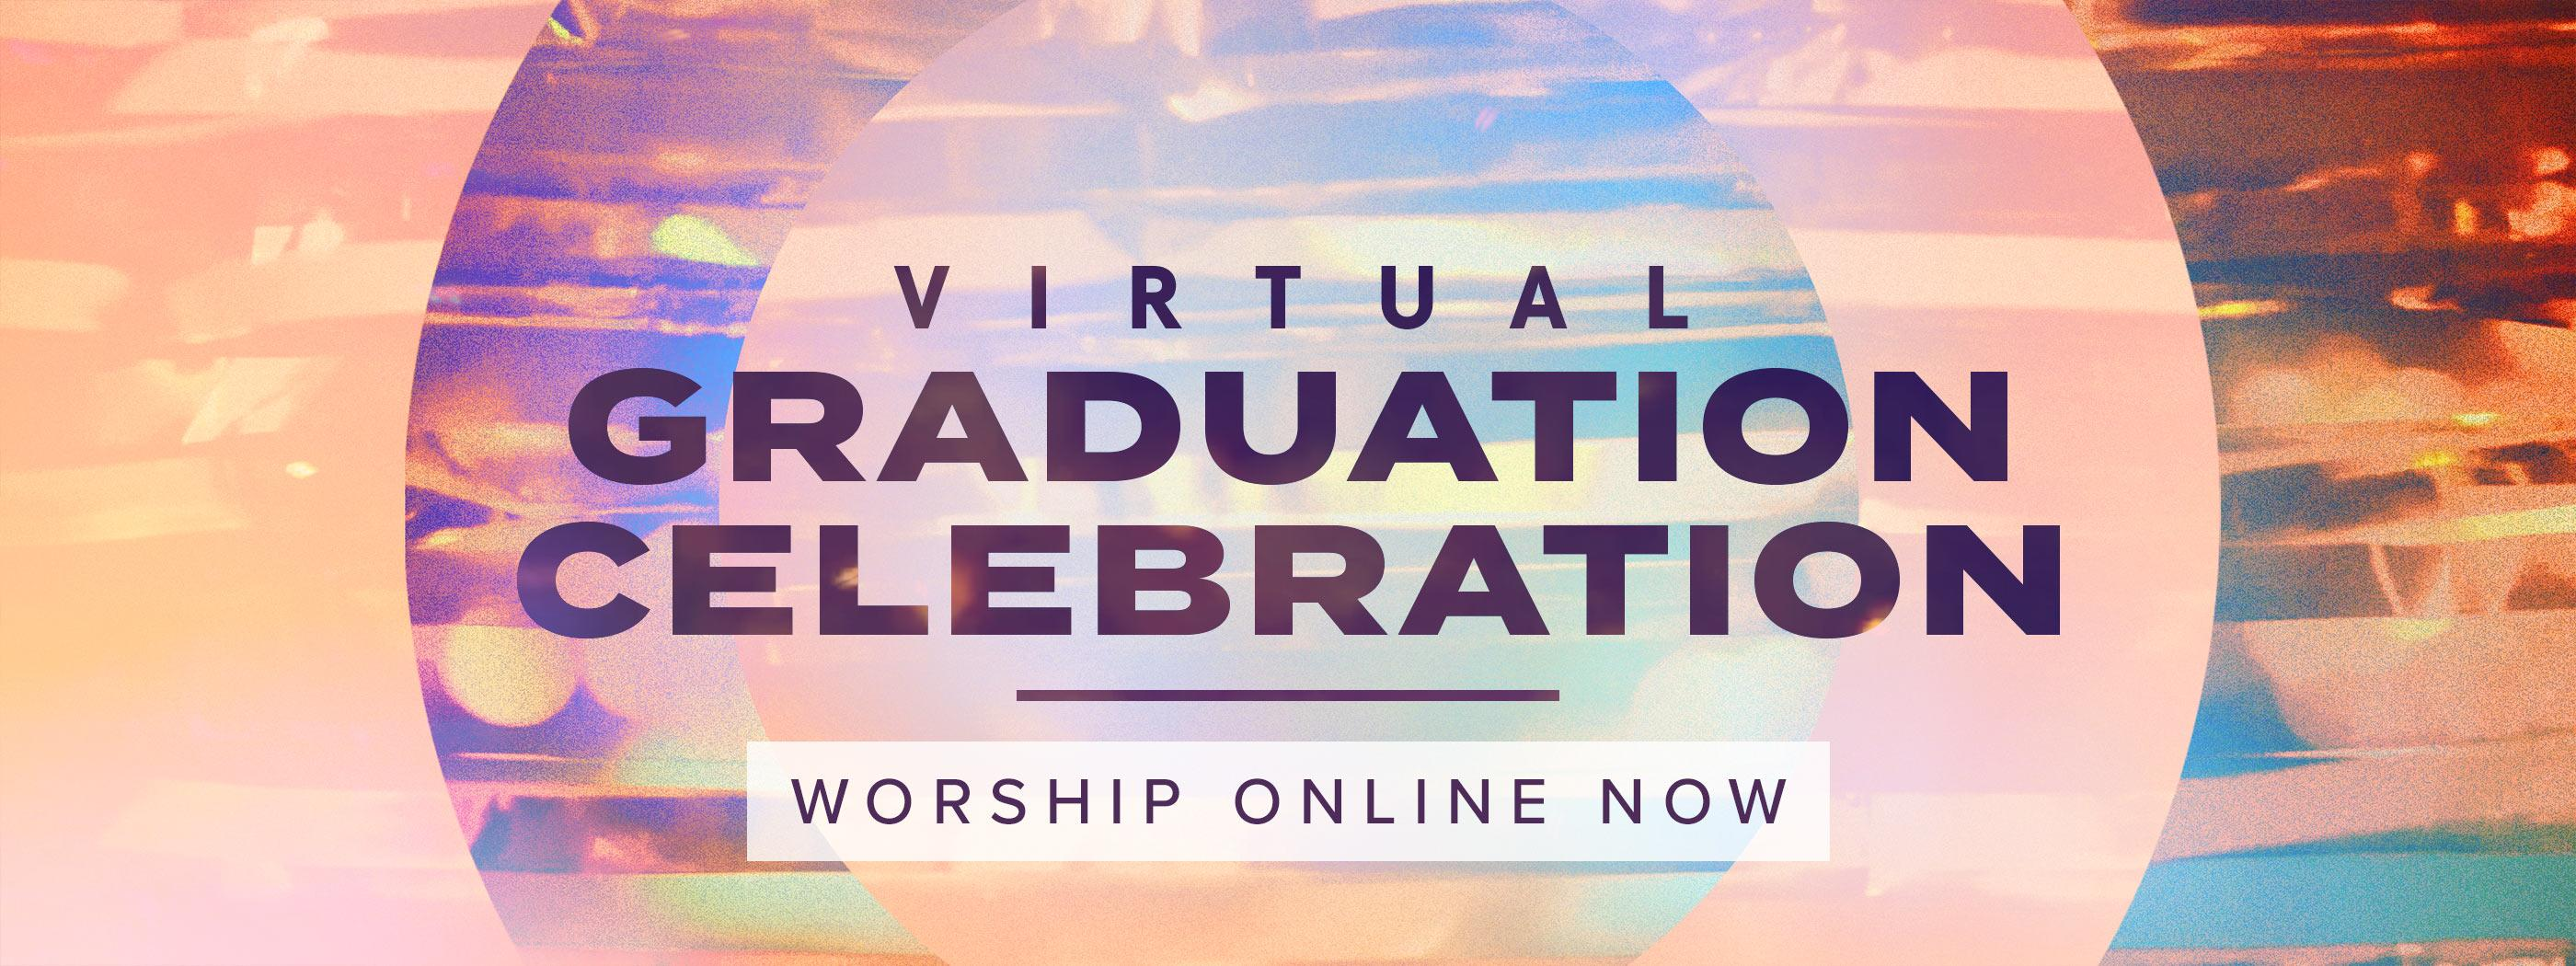 Virtual Graduation Service - Worship Online Now